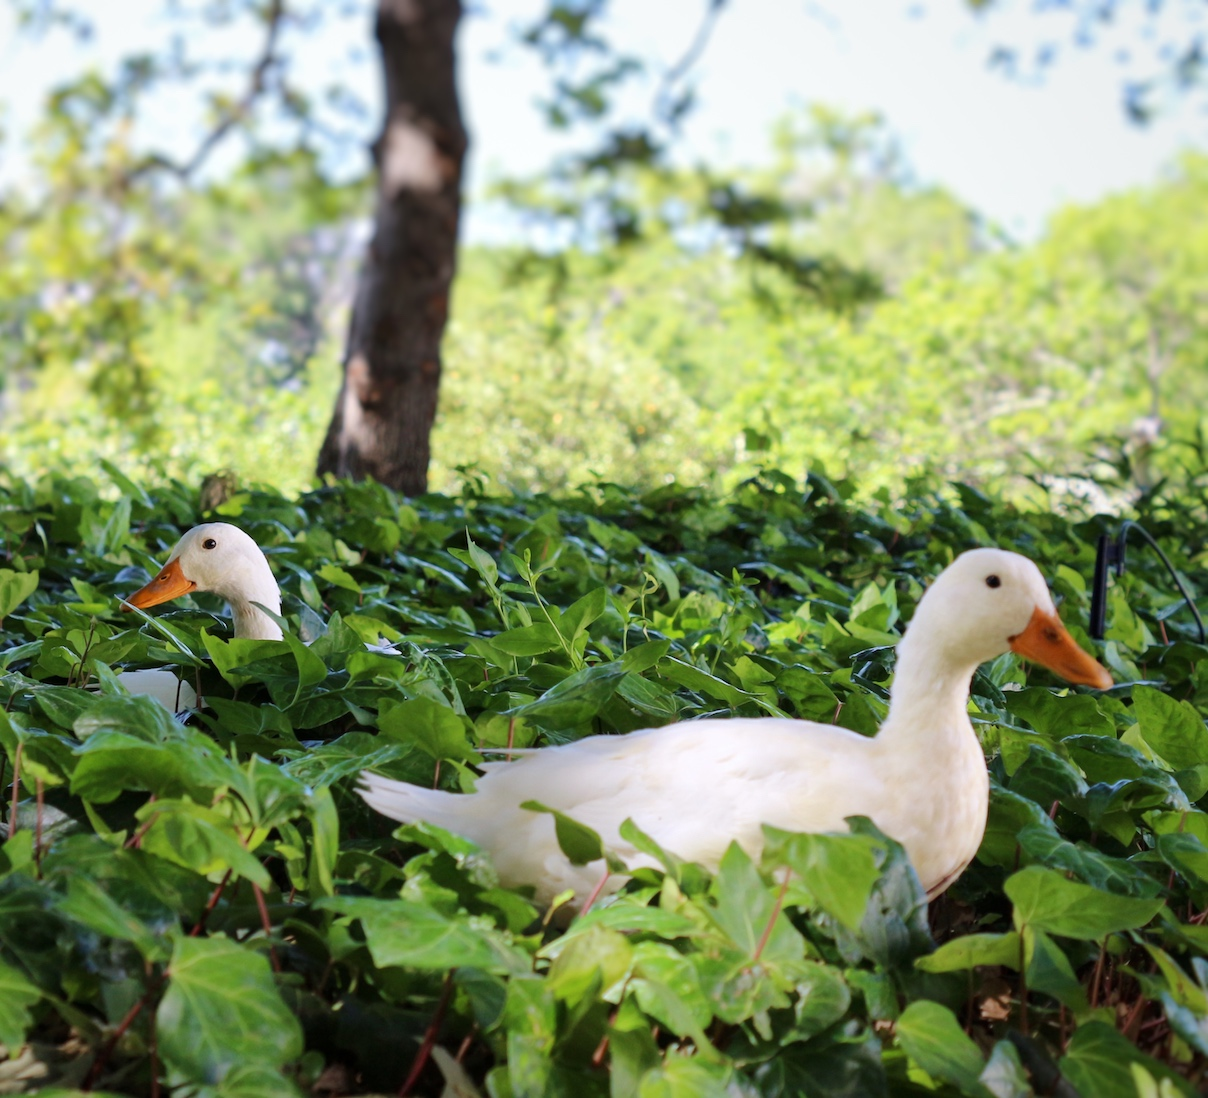 Photograph of ducks at Groot Constantia using a Canon 100D